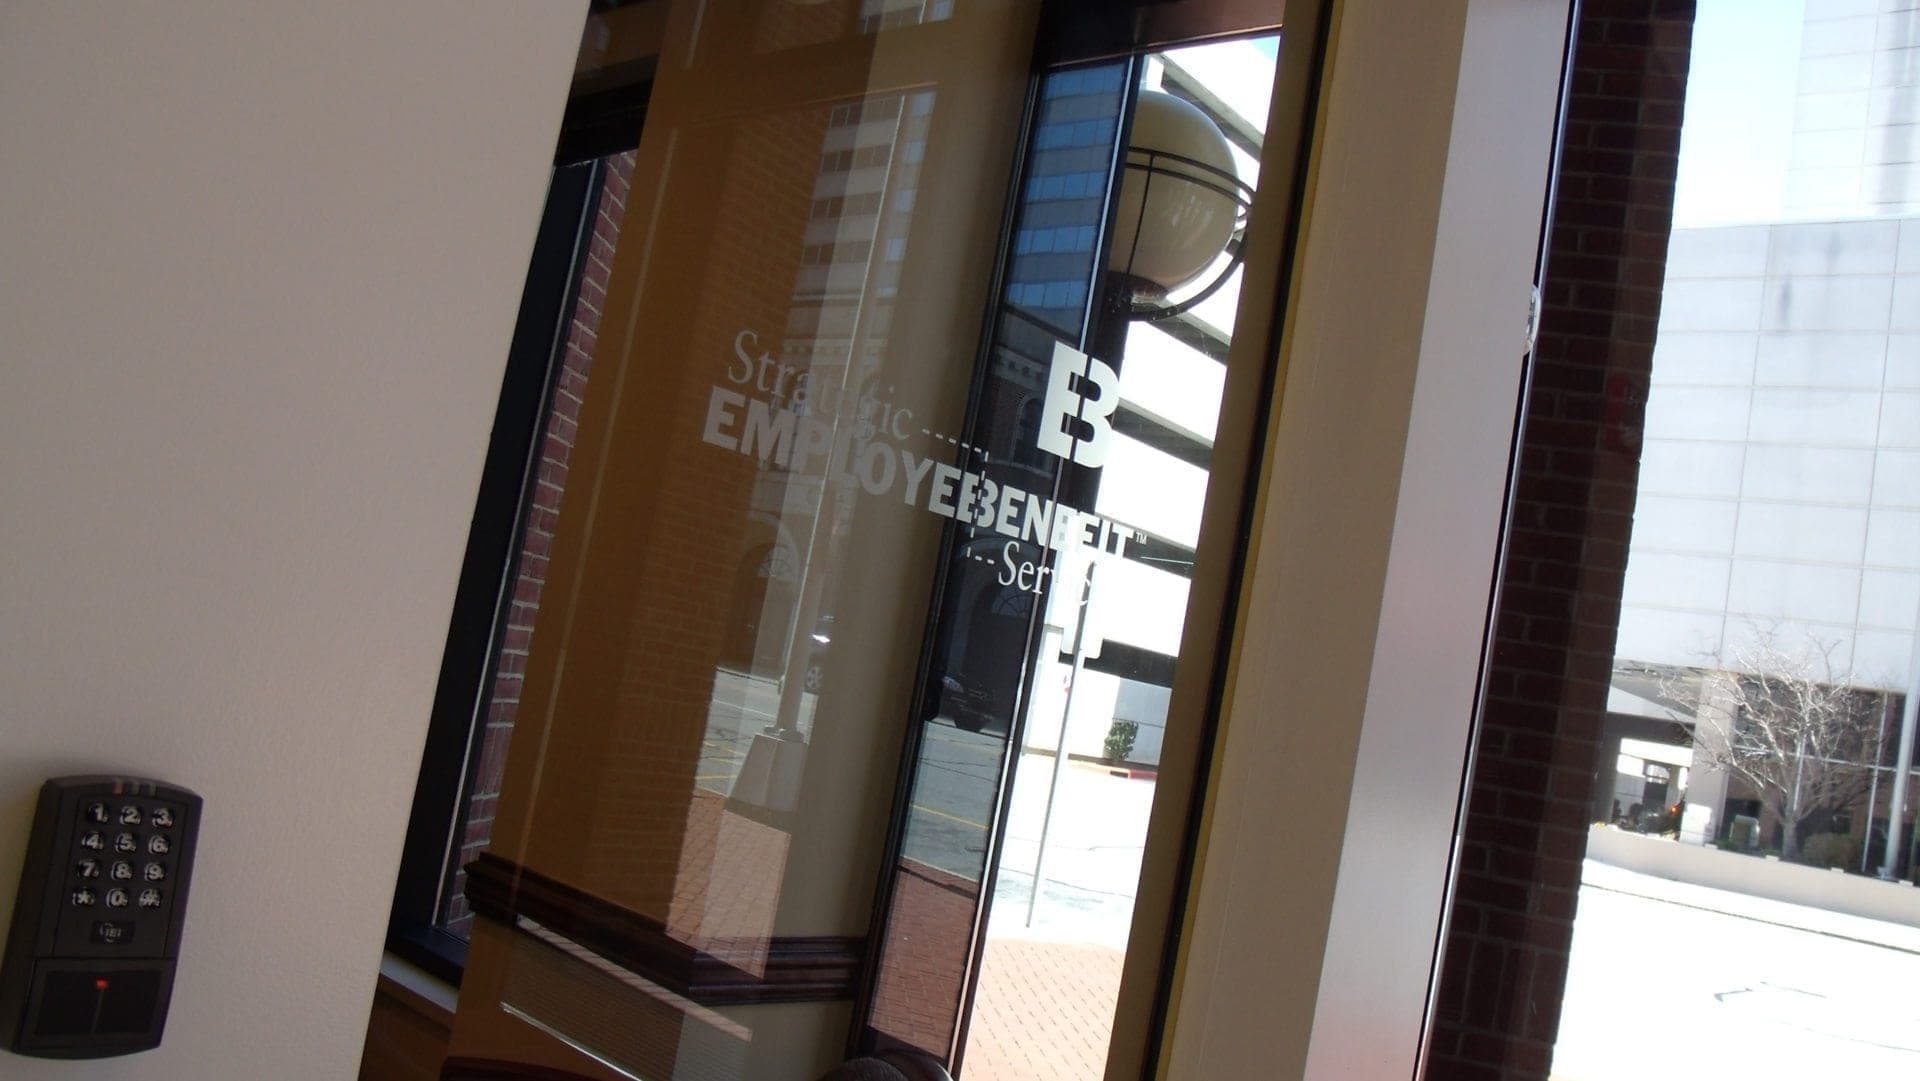 Interior vinyl graphic design for lobbies & conference rooms by Holt Environments